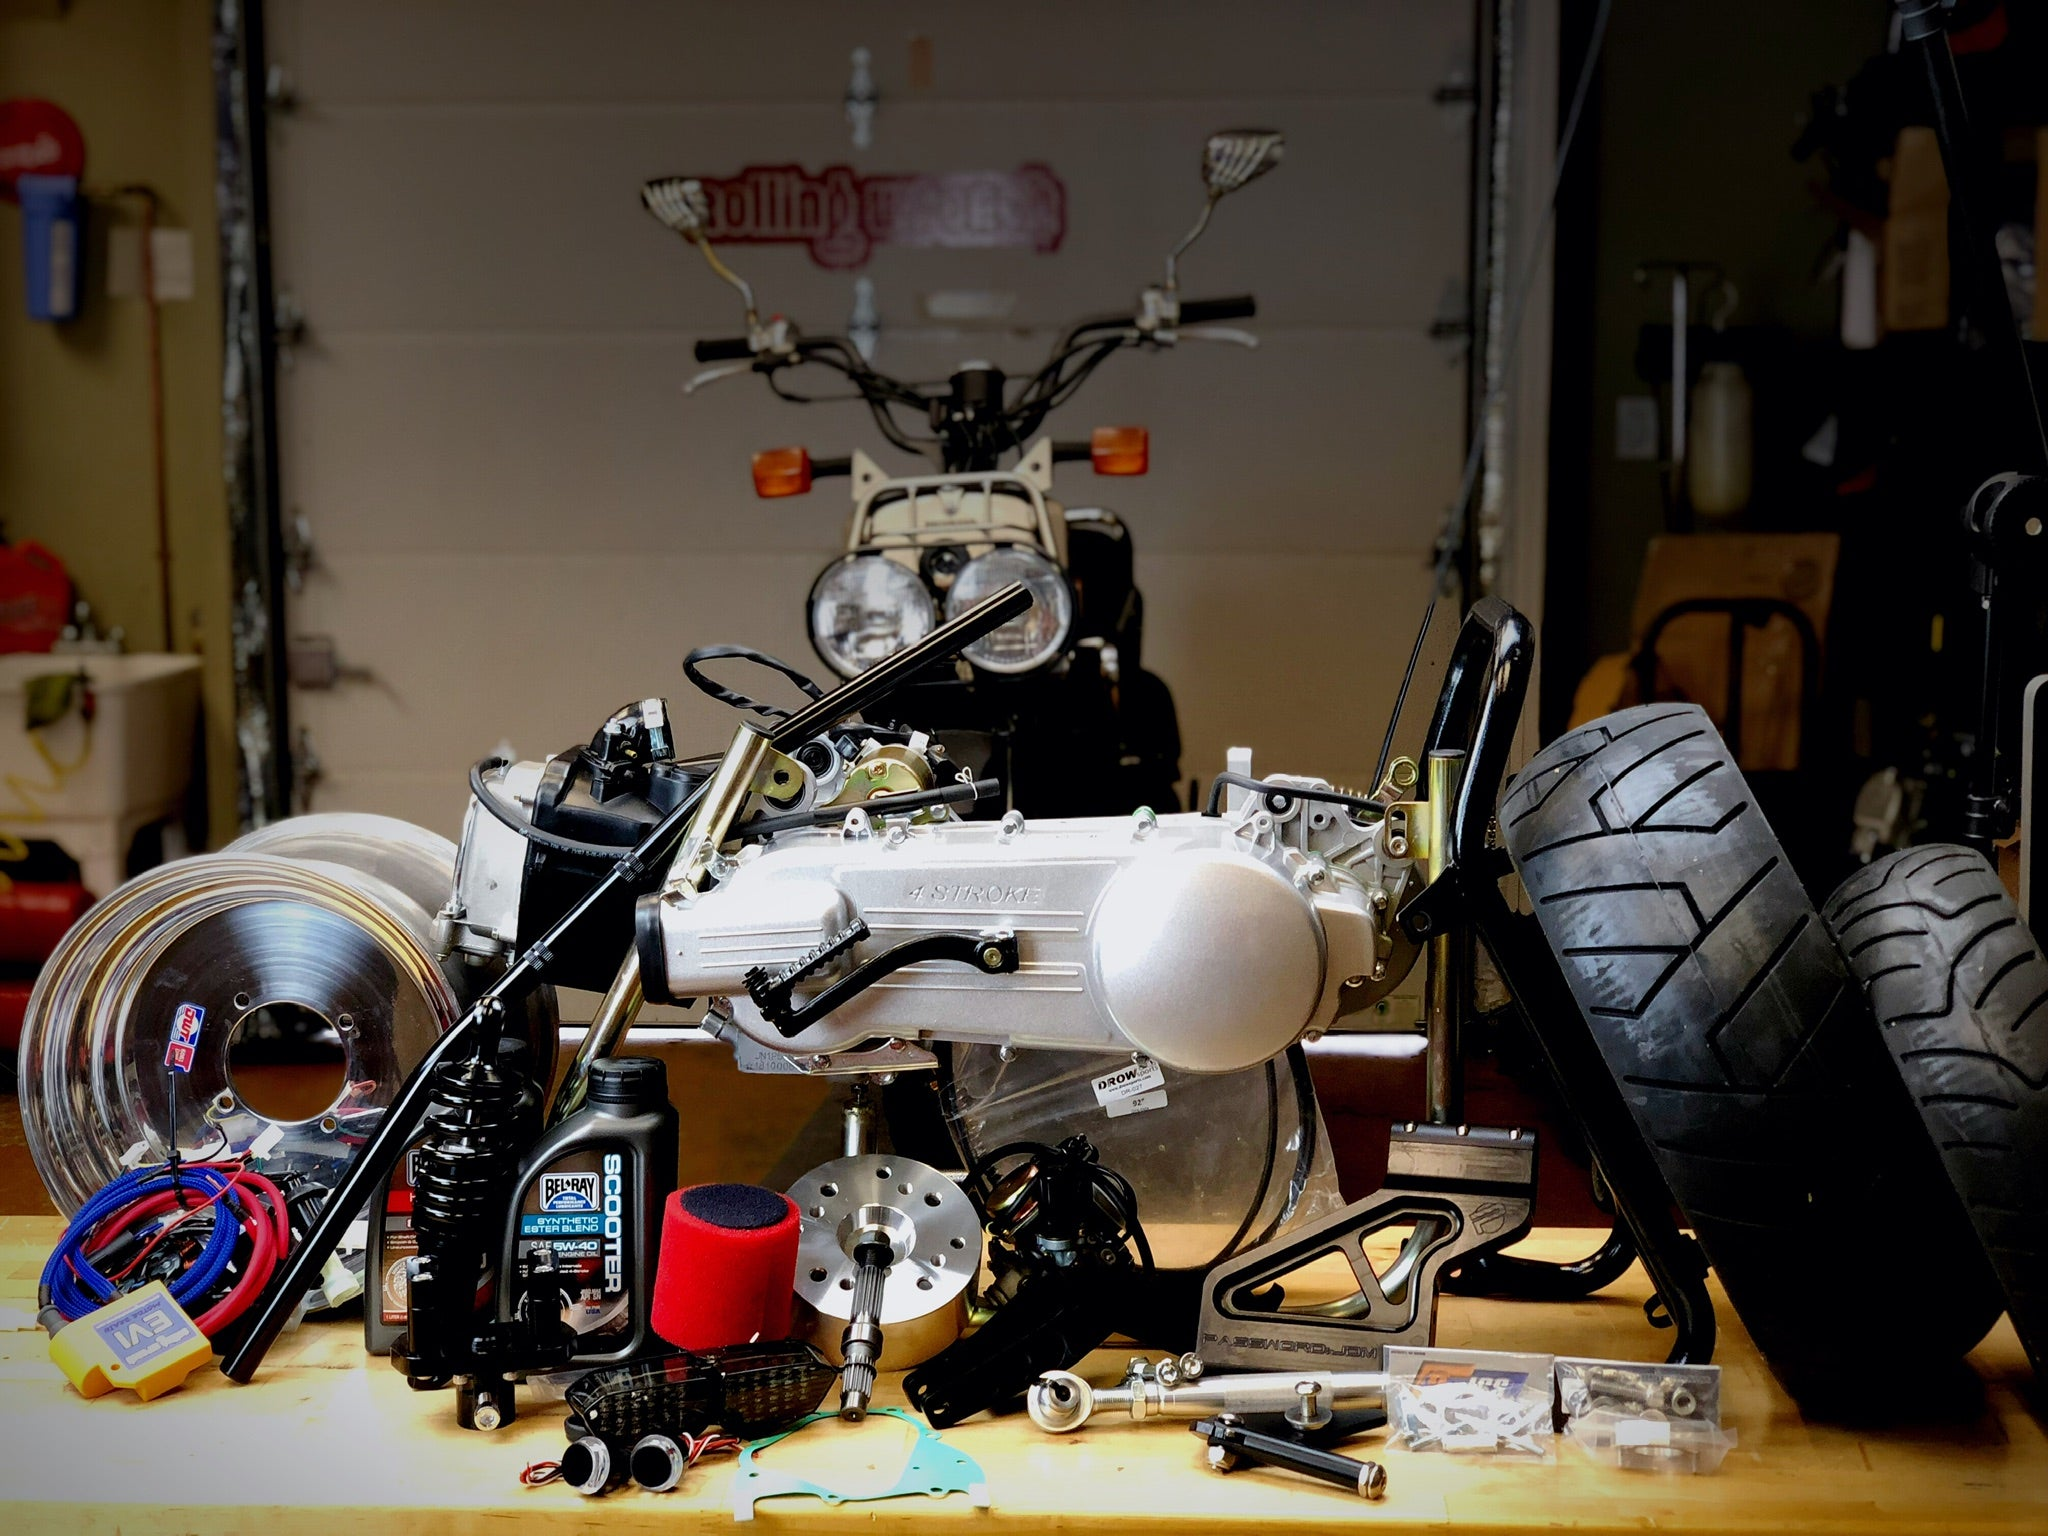 Honda Ruckus GY6 Swap Kit [LOW/WIDE/STRETCH LOOK]